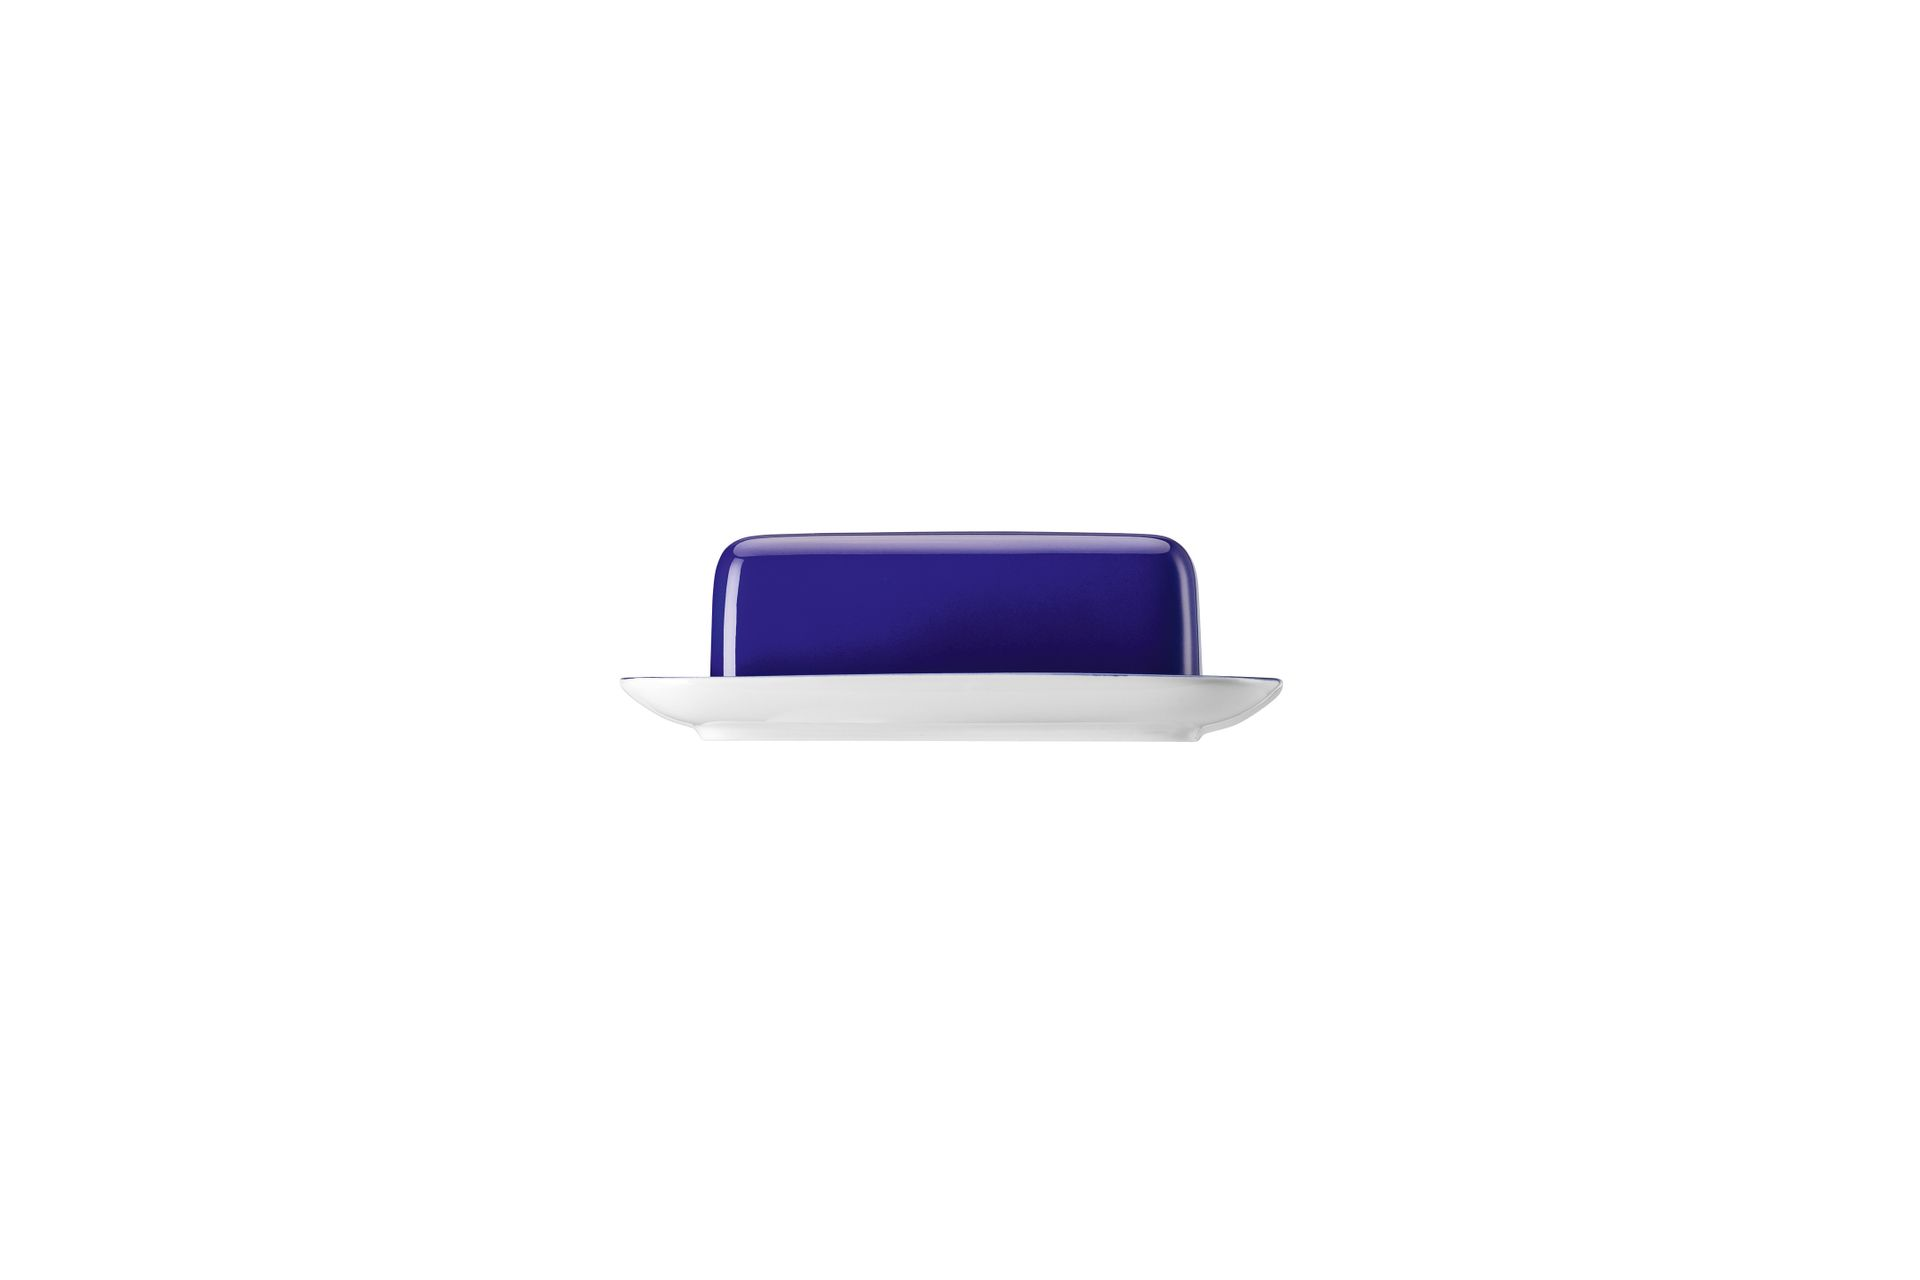 Thomas Sunny Day - Cobalt Blue Butter Dish + Lid thumb 1